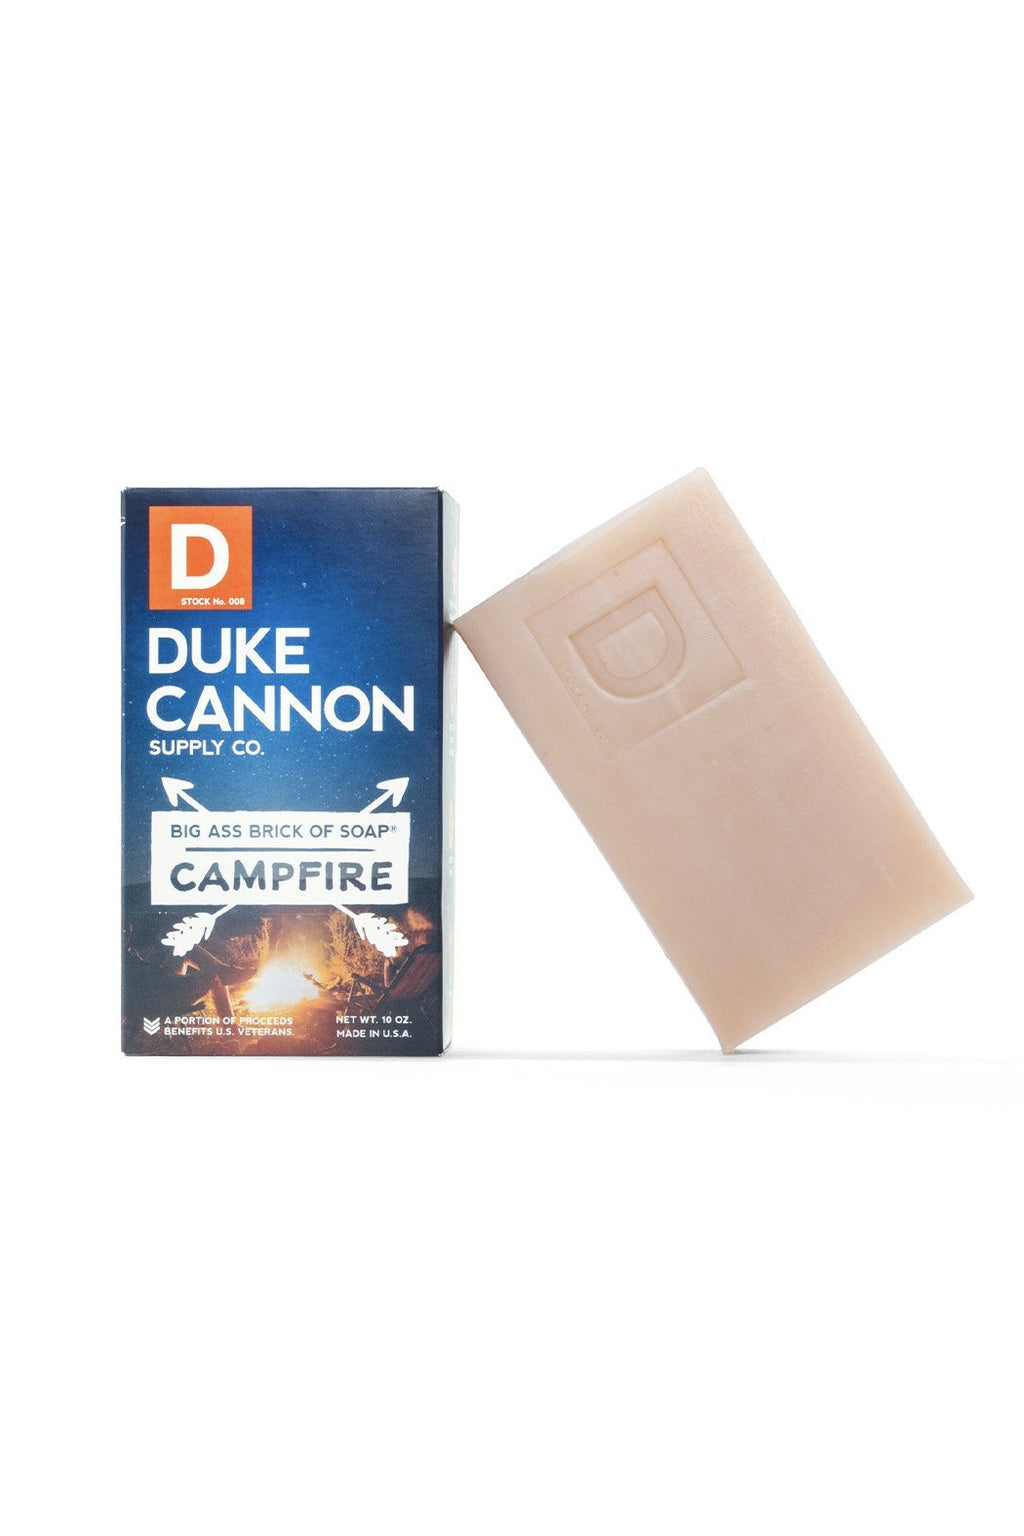 EcoVibe Style - Duke Cannon Big Ass Brick of Soap Campfire 10oz